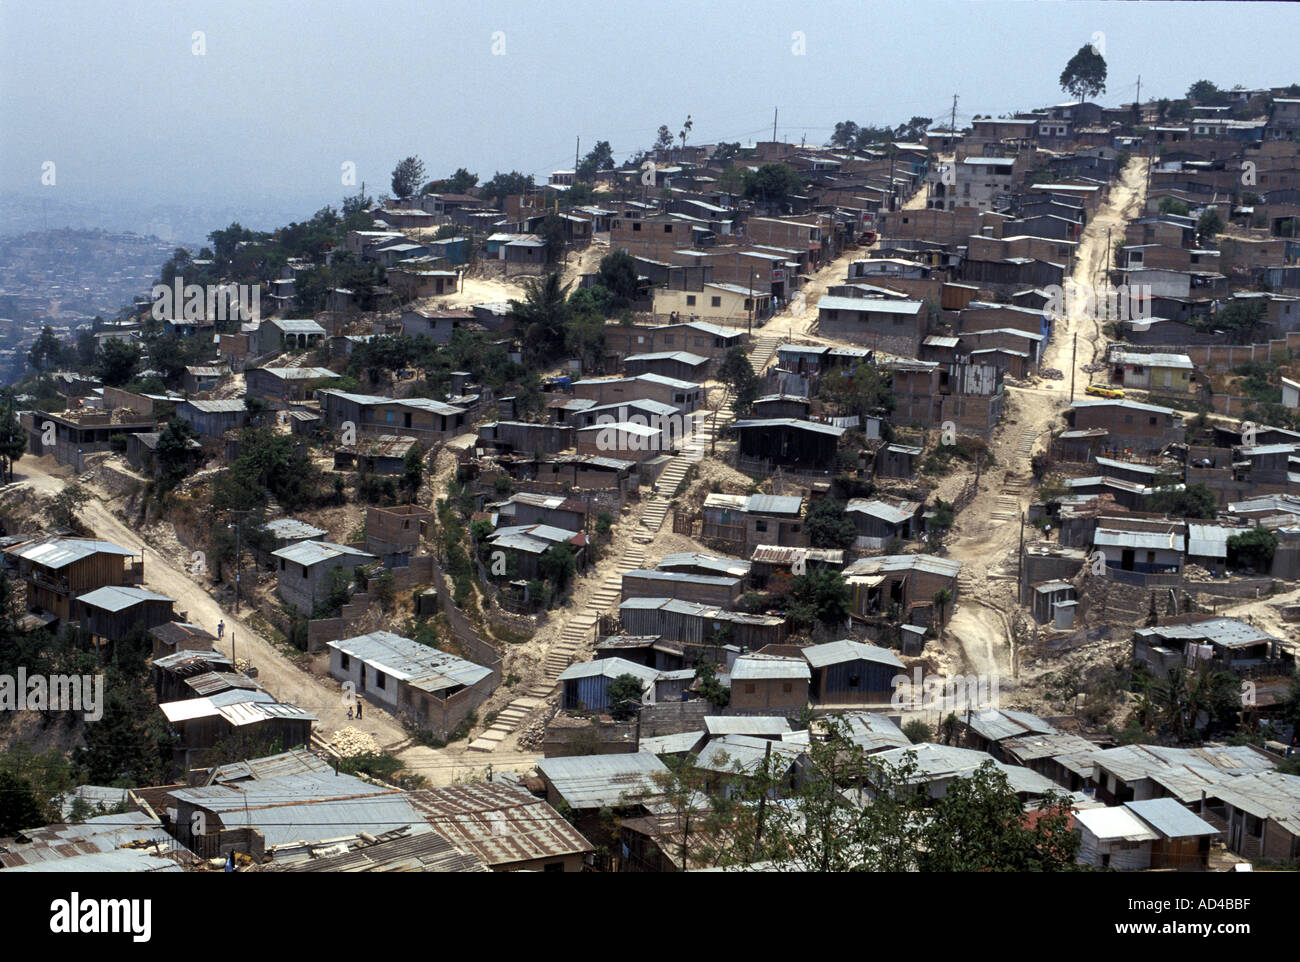 Image result for tegucigalpa shanty towns